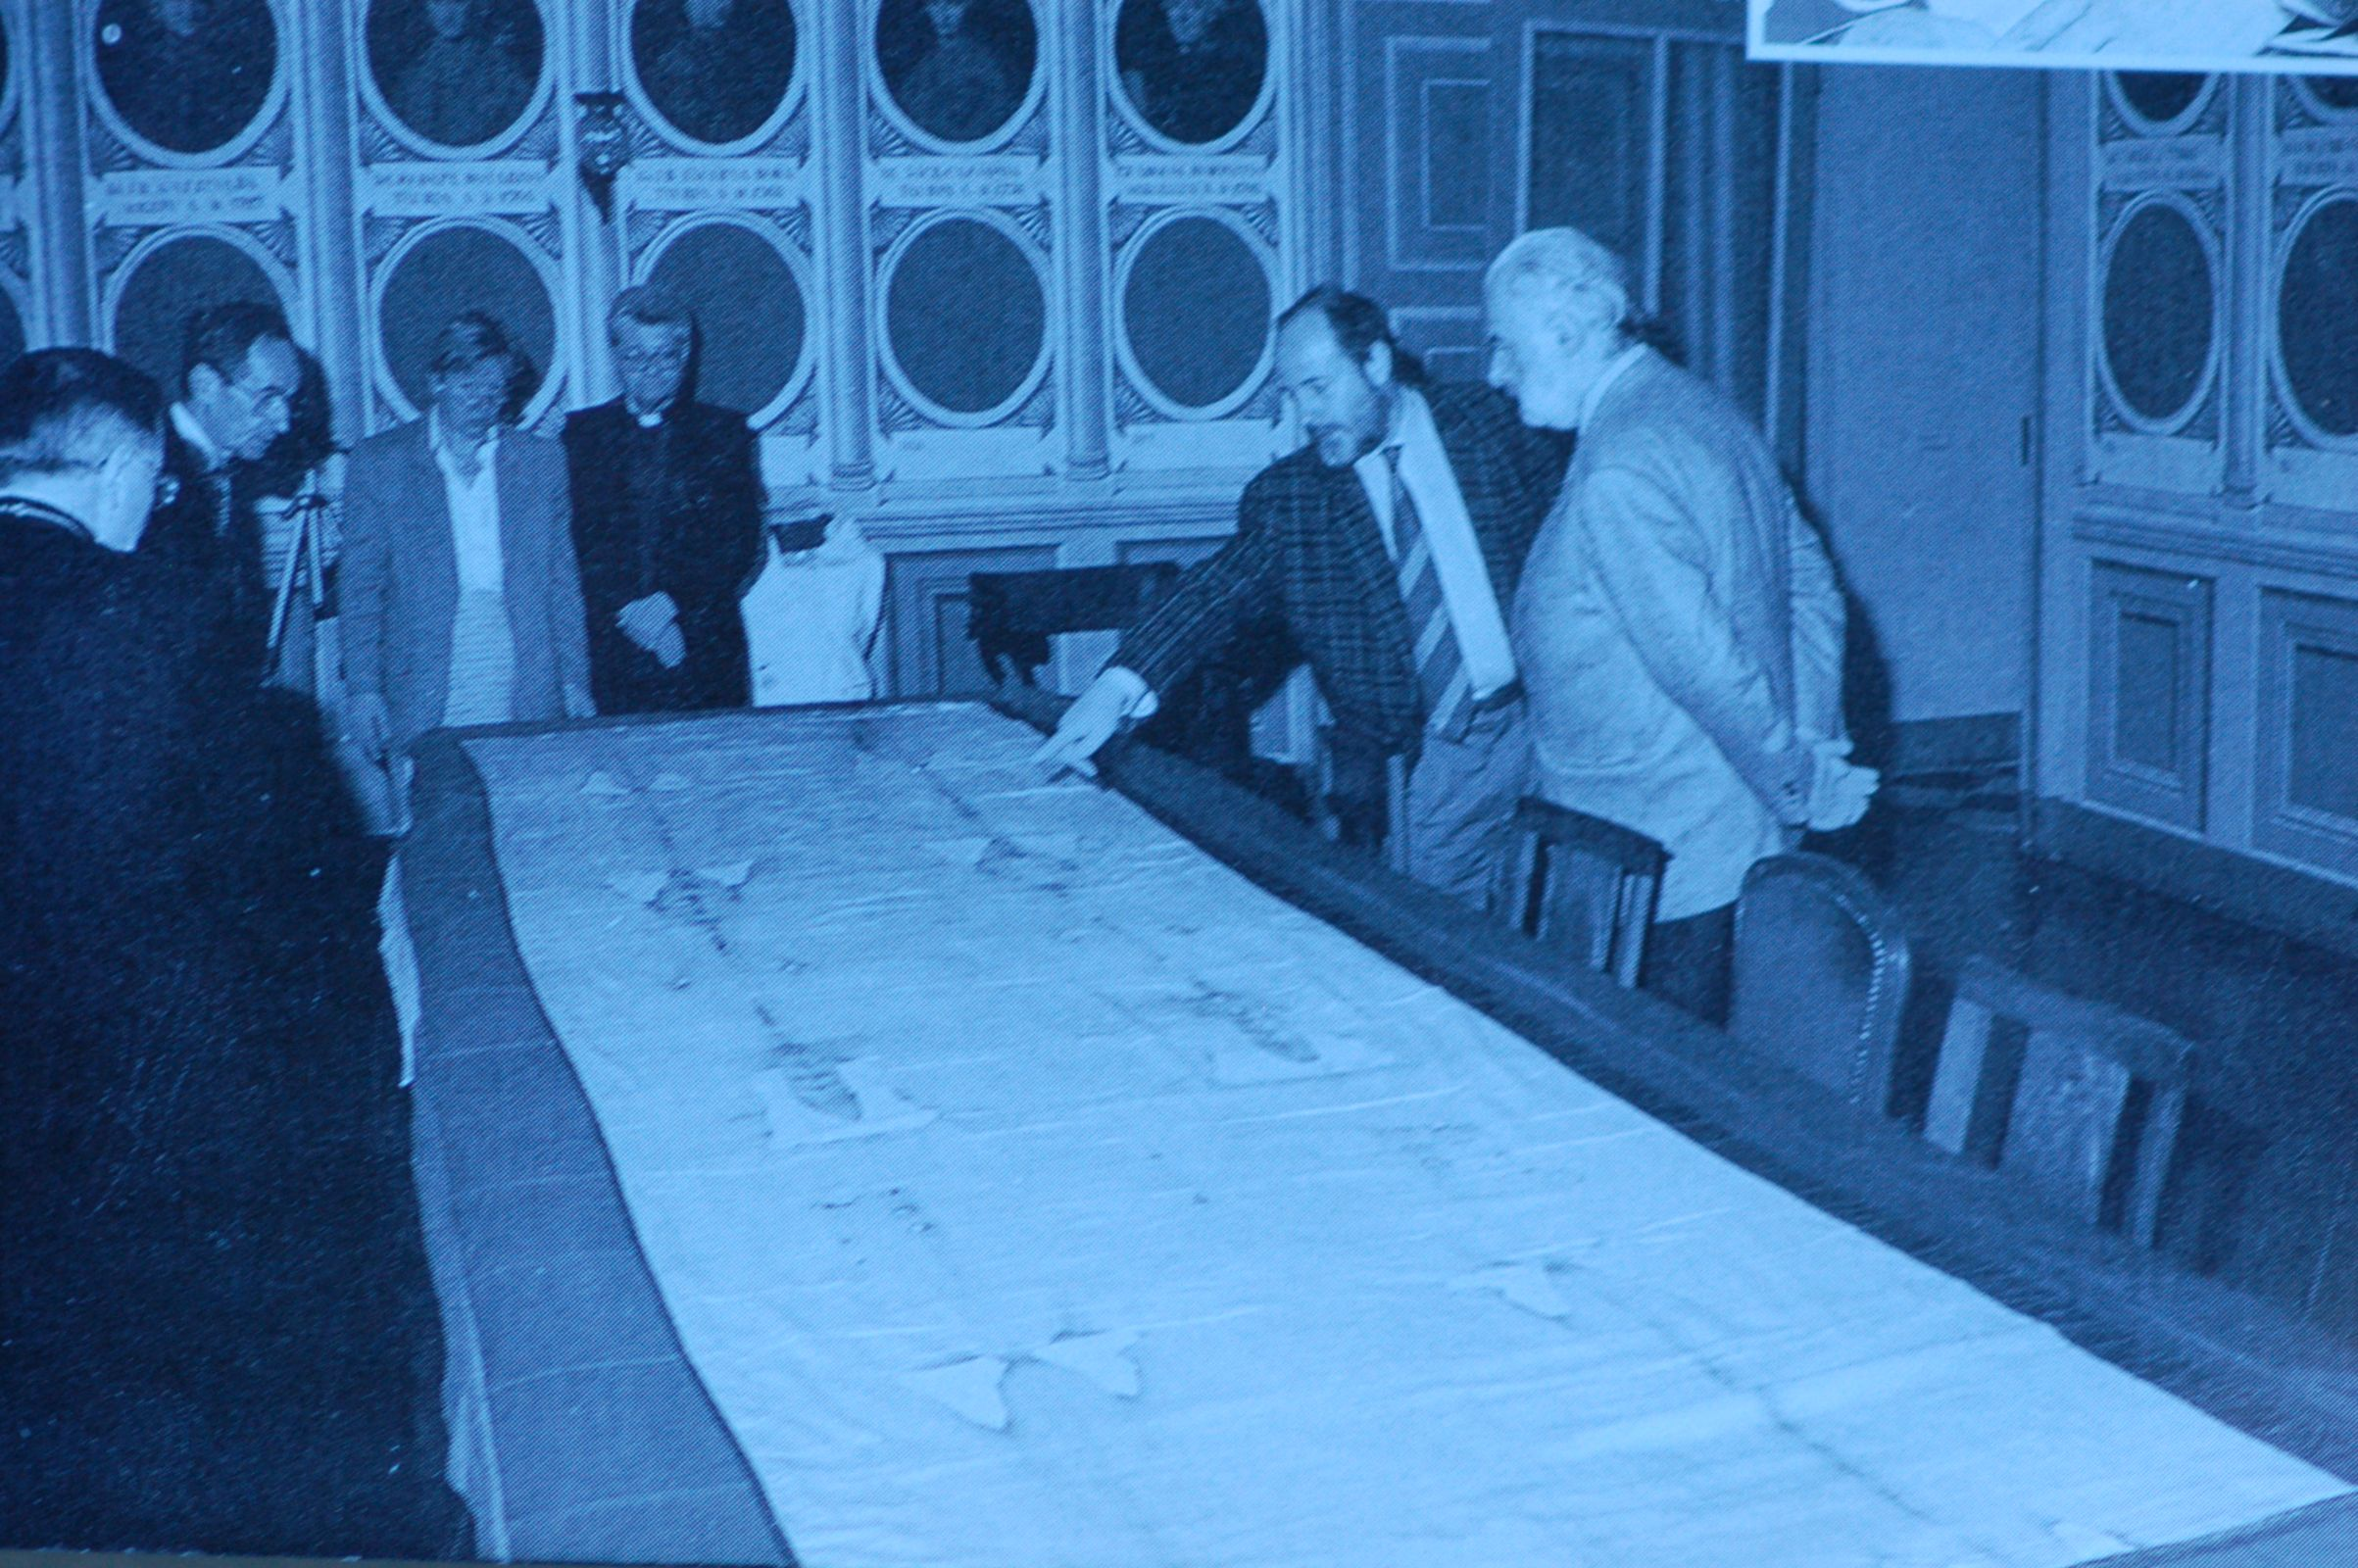 Photo 2. Inspection Shroud after fire 1997 Turin